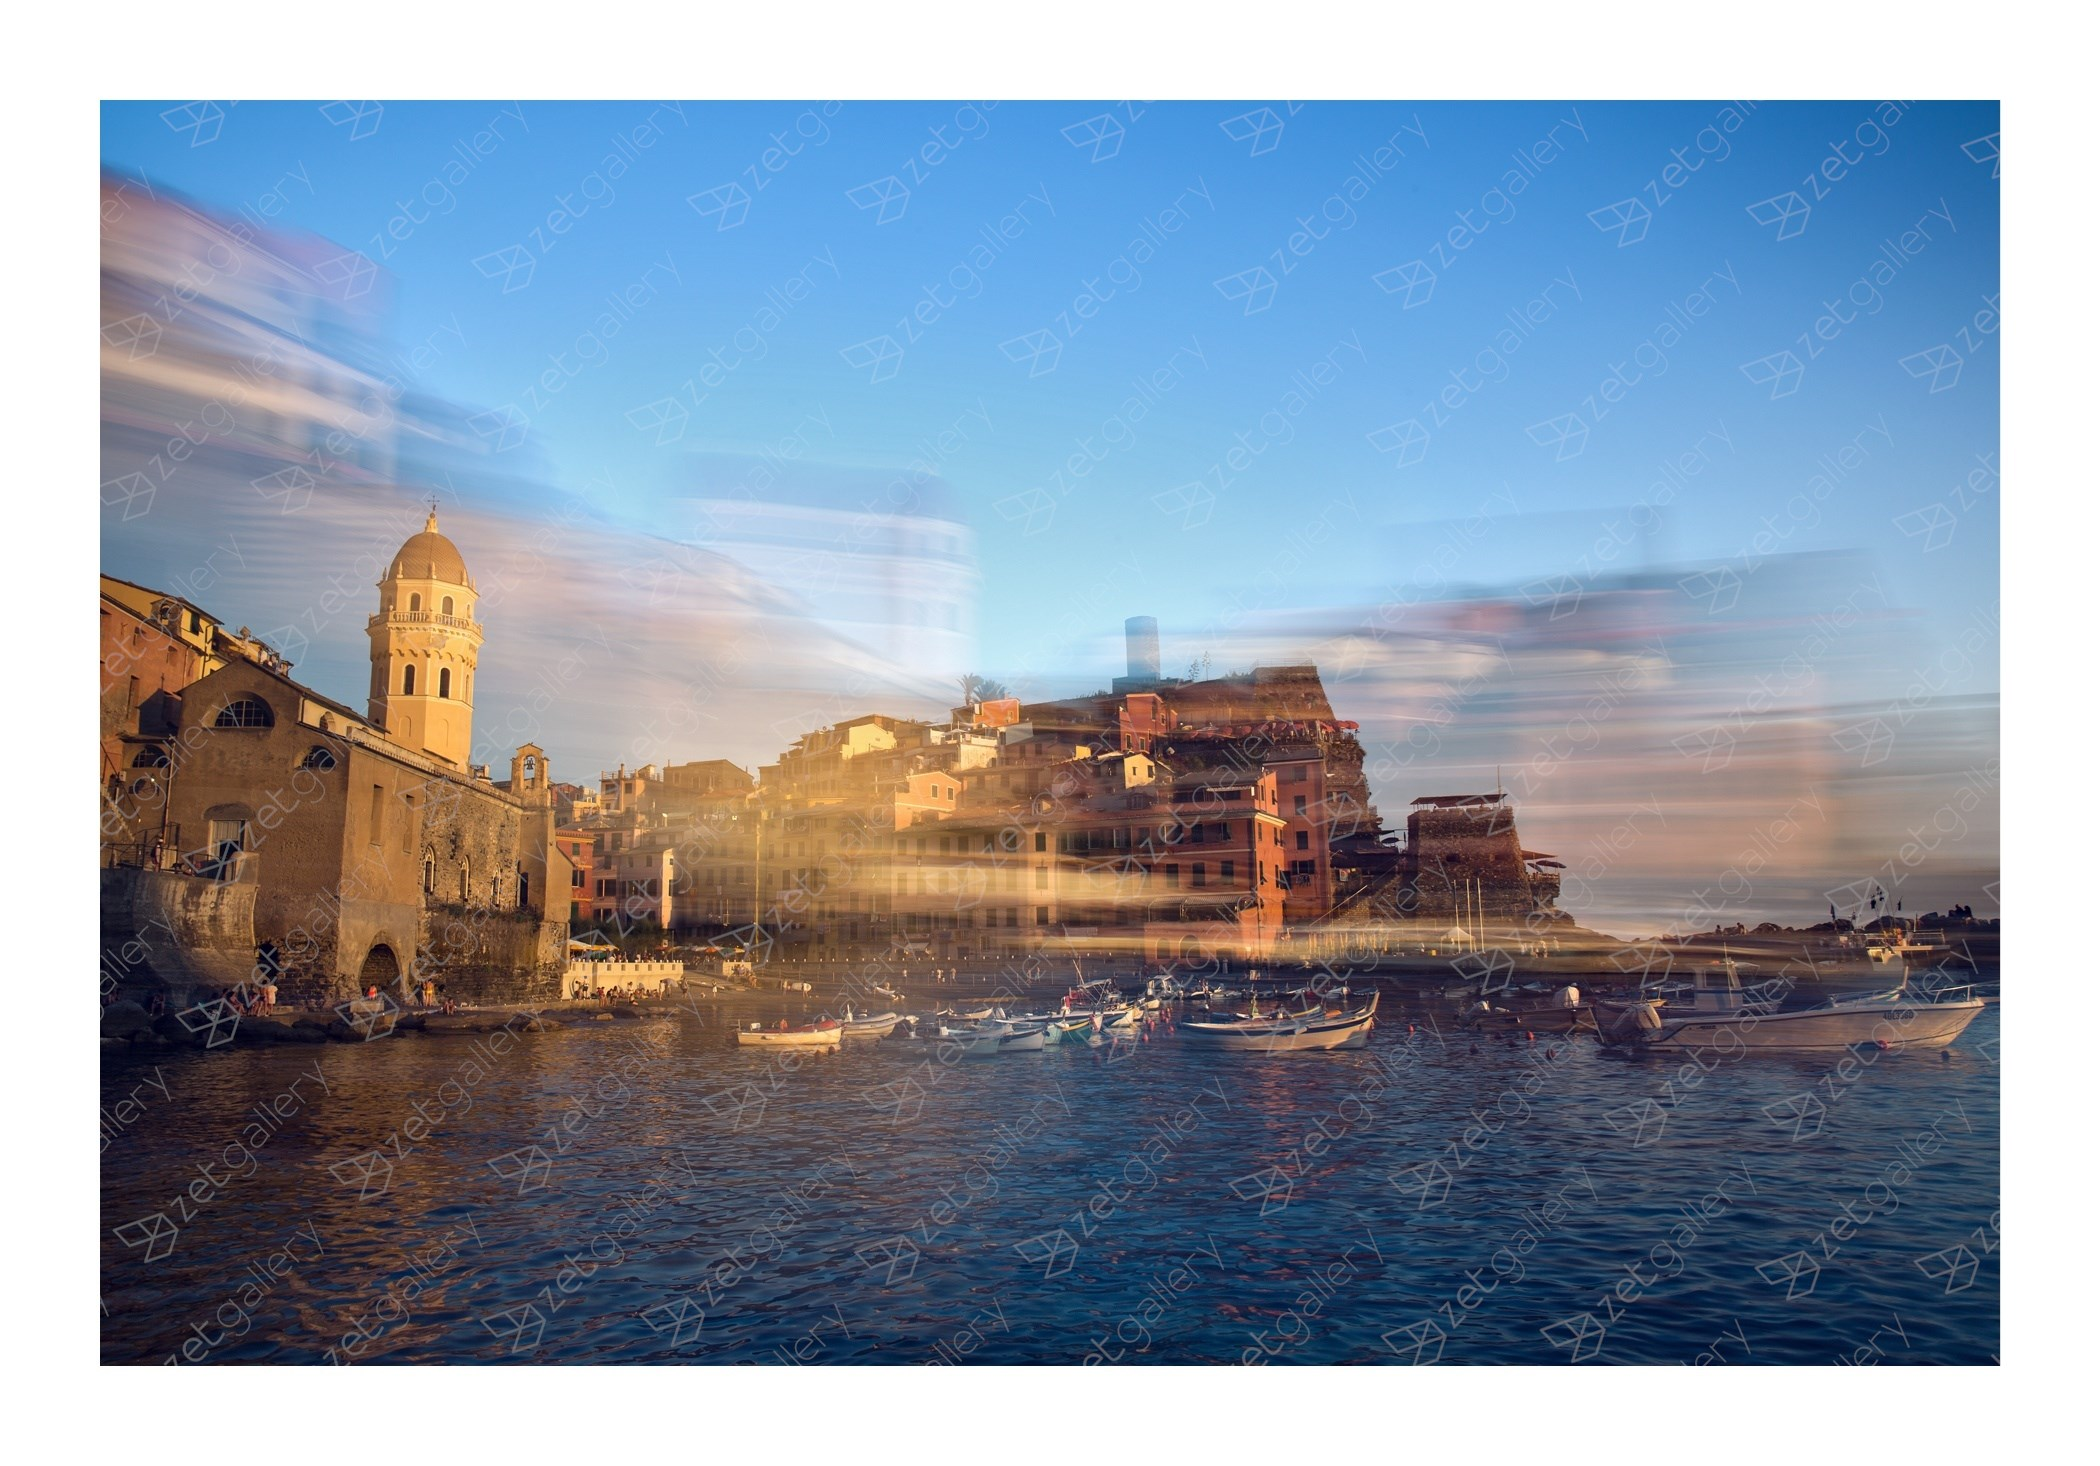 Vernazza, original Landscape Digital Photography by Daniel Camacho